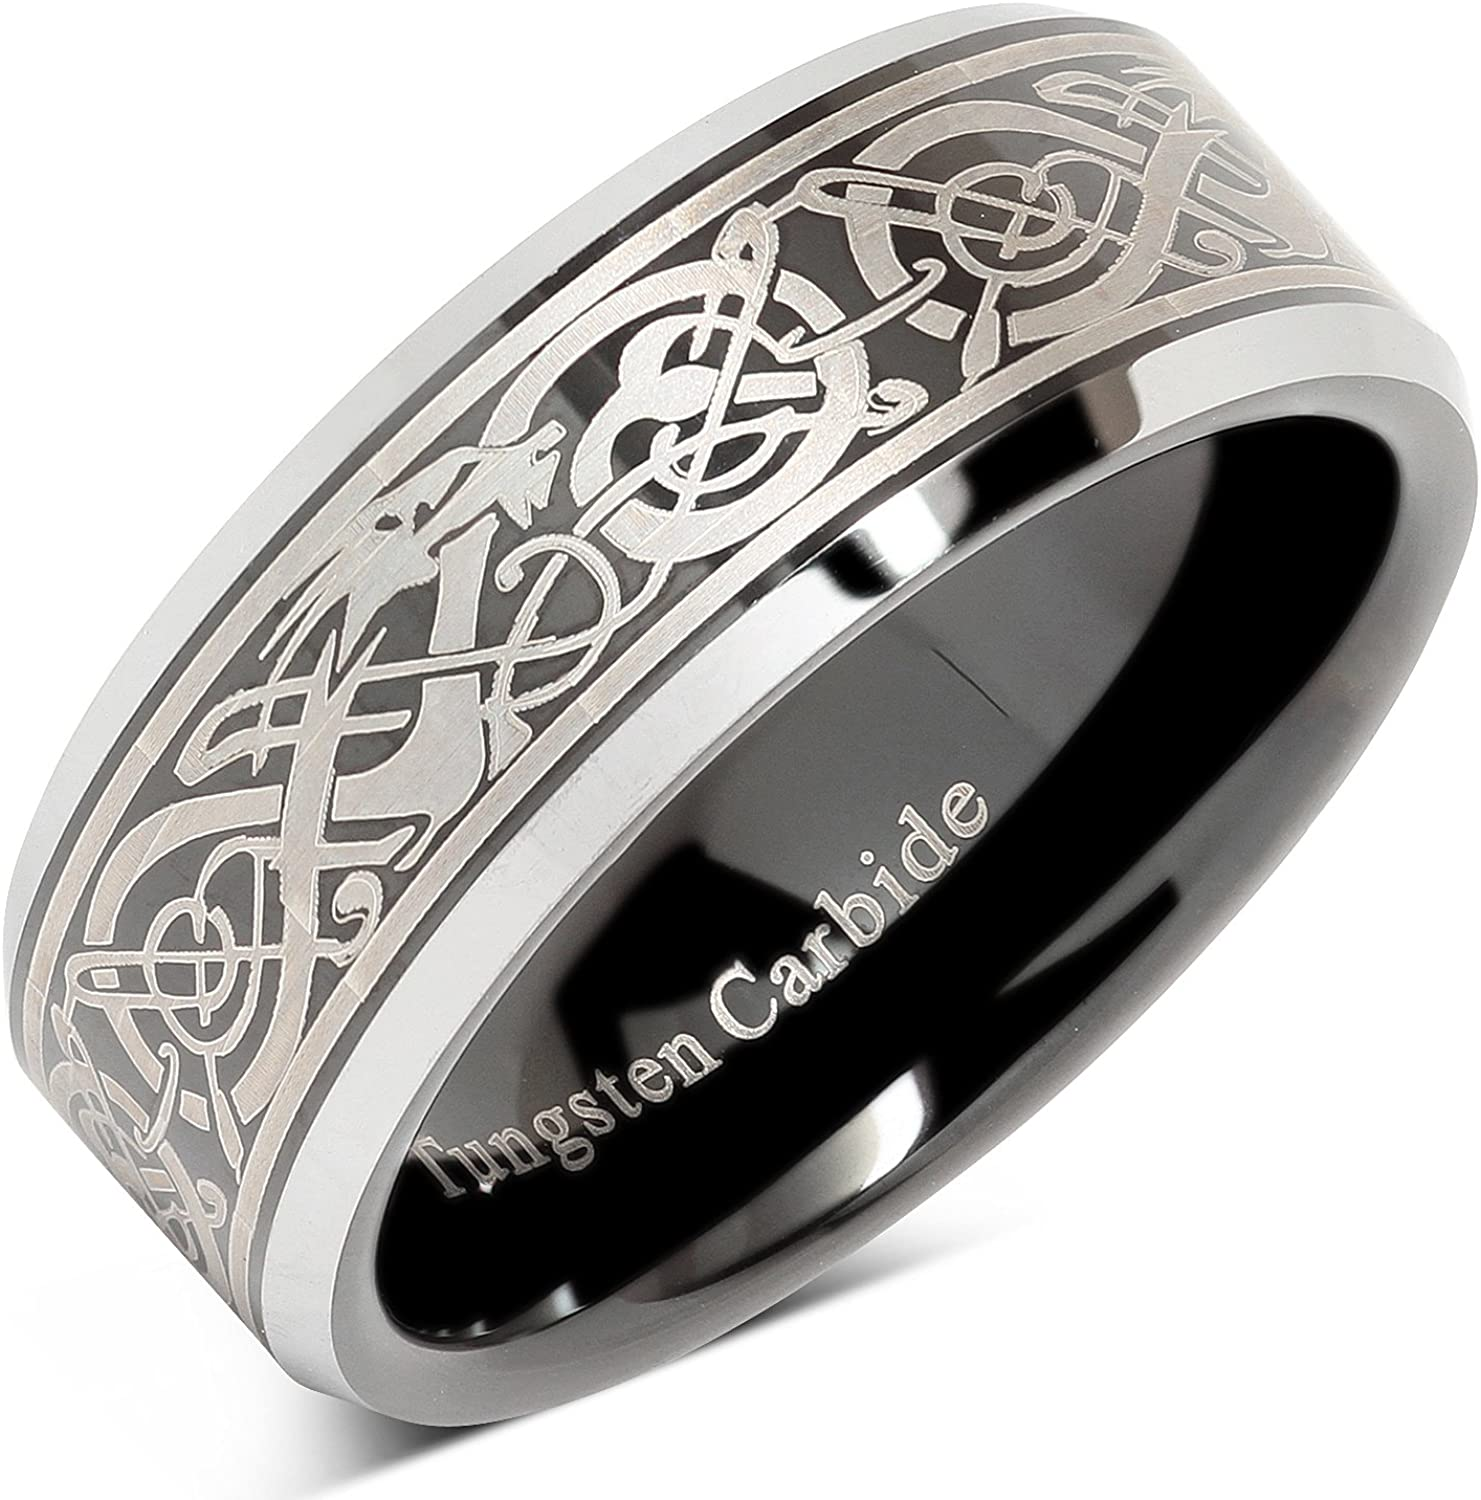 100S JEWELRY Tungsten Ring for Men Black Wedding Band Celtic Dragon Engraved Engagement Promise Beveled Size 8-15